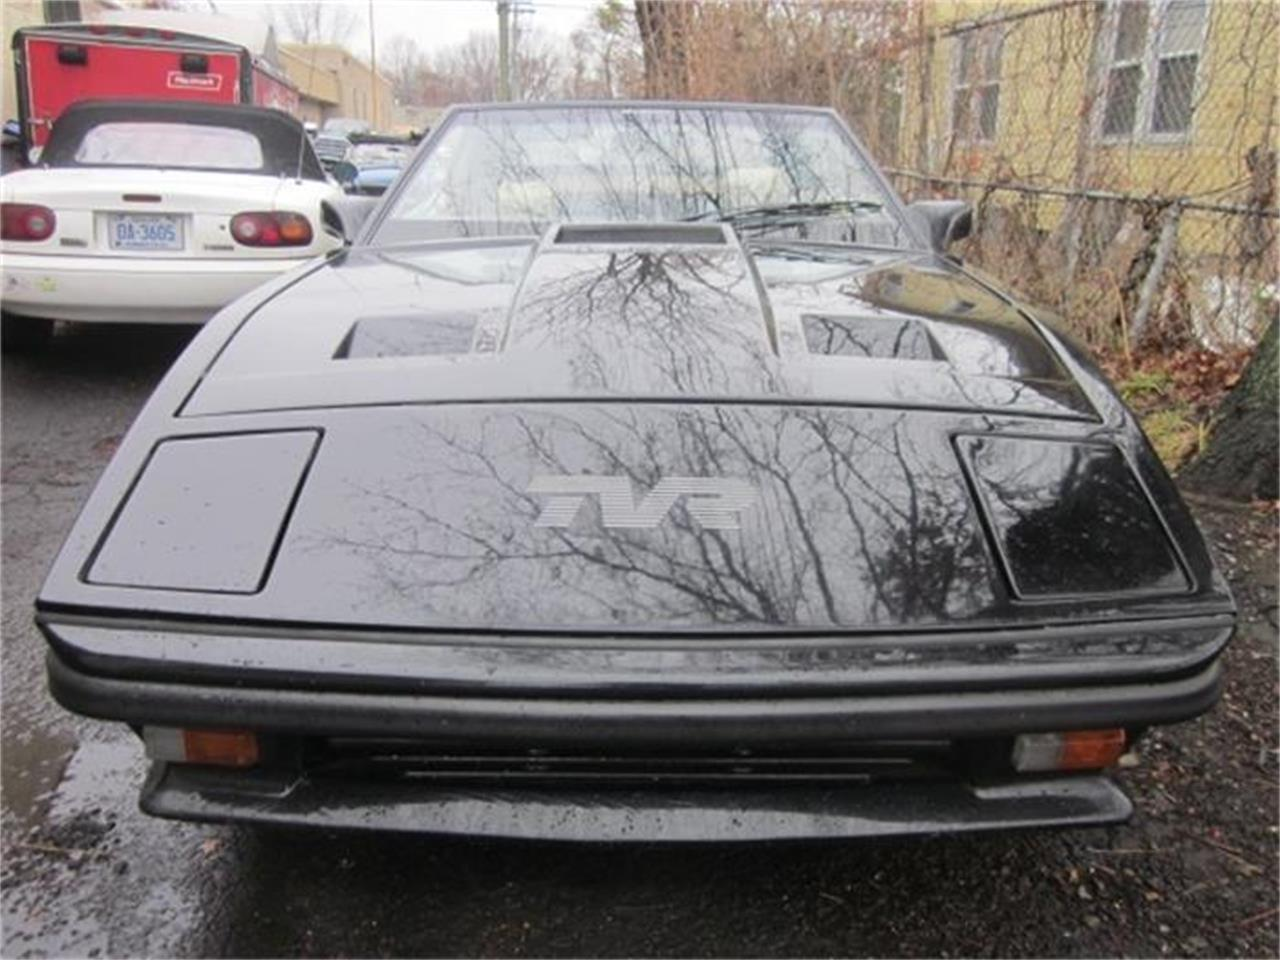 1986 TVR 280i for sale in Stratford, CT – photo 16